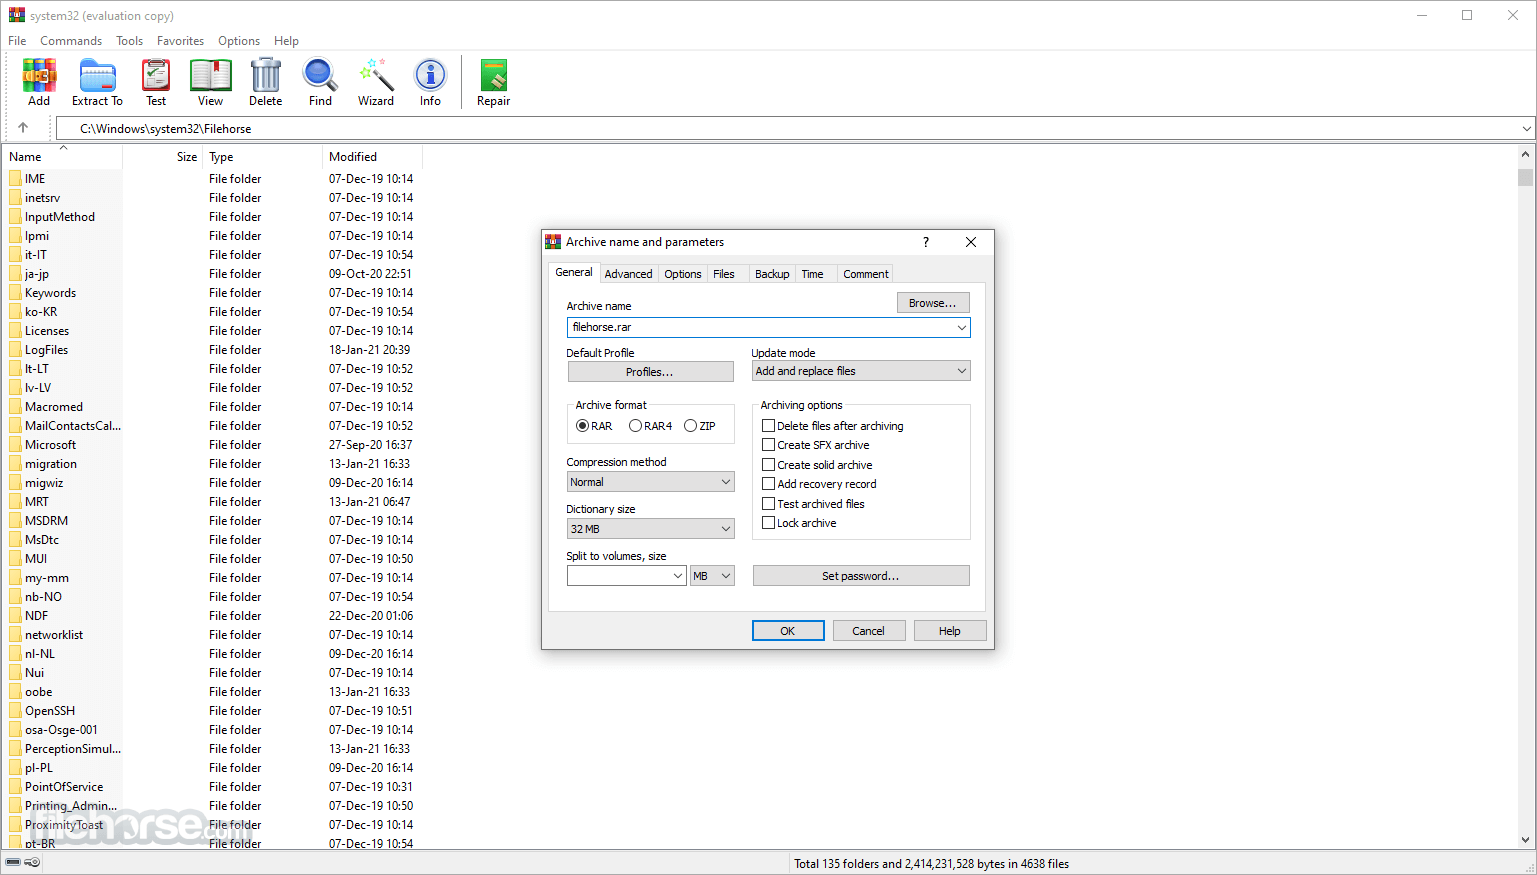 WinRAR 5.61 Beta 1 (32-bit) Screenshot 2